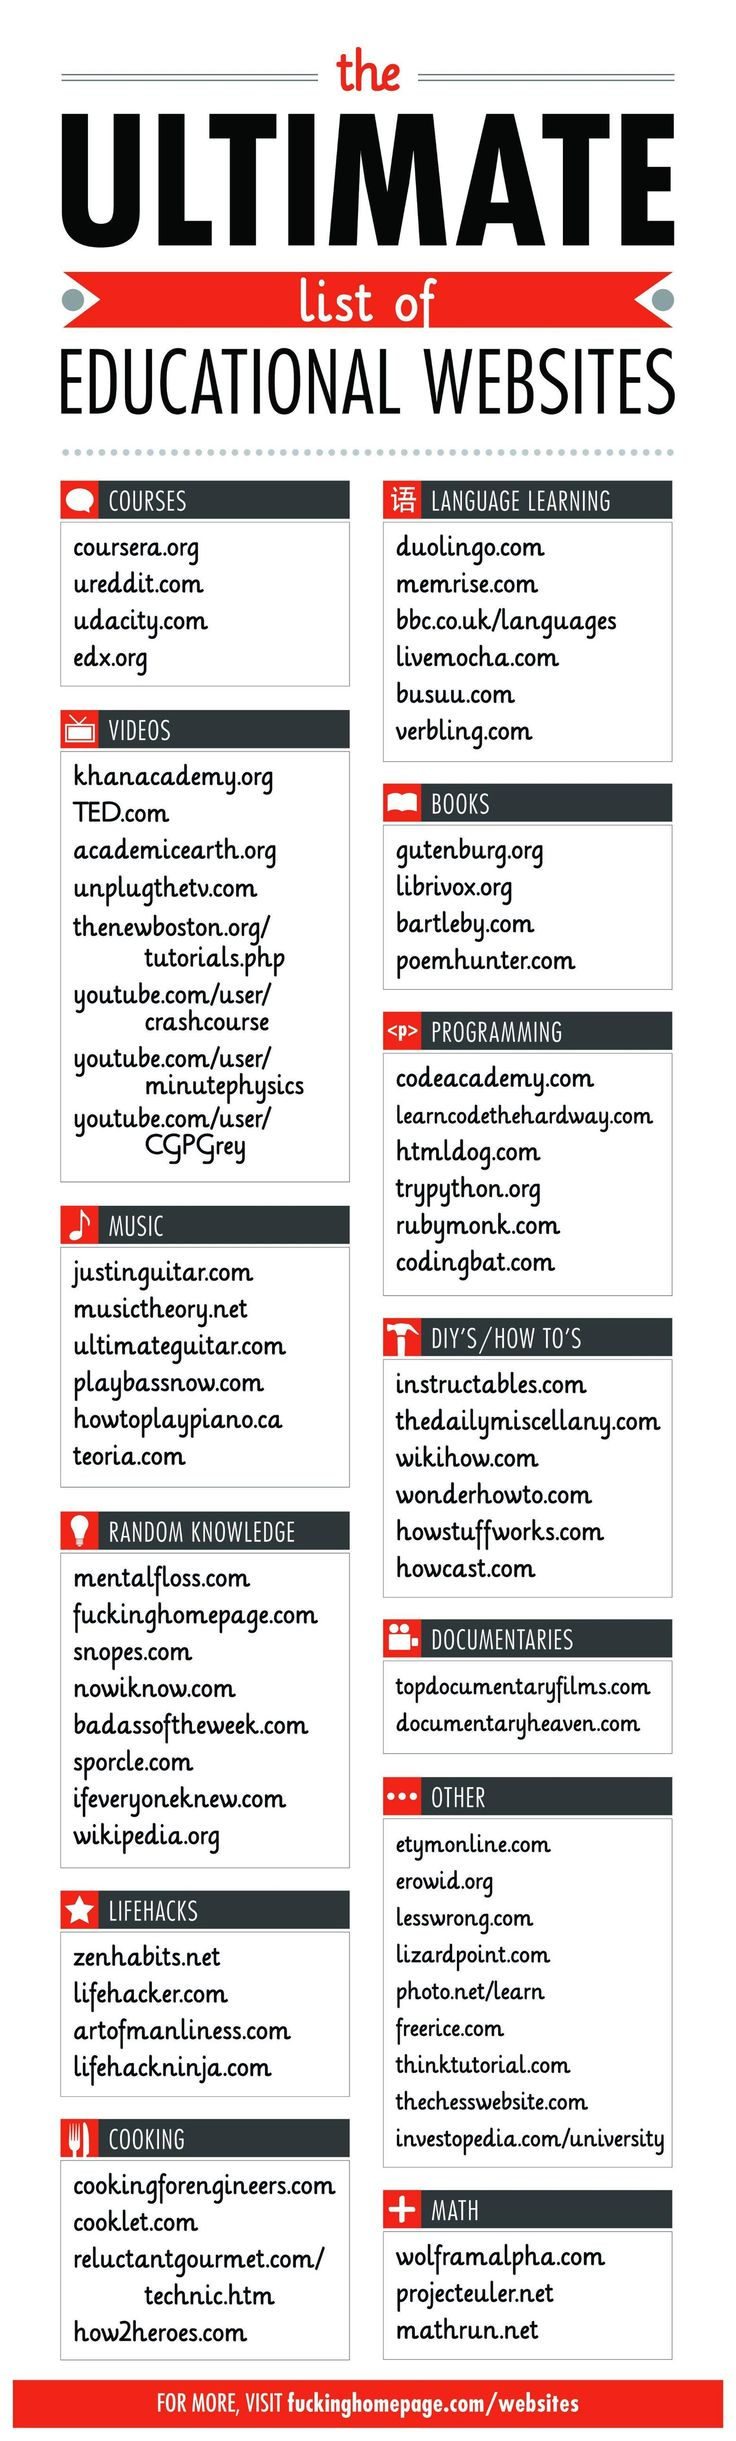 The ultimate list of educational websites. Good for summer learning.